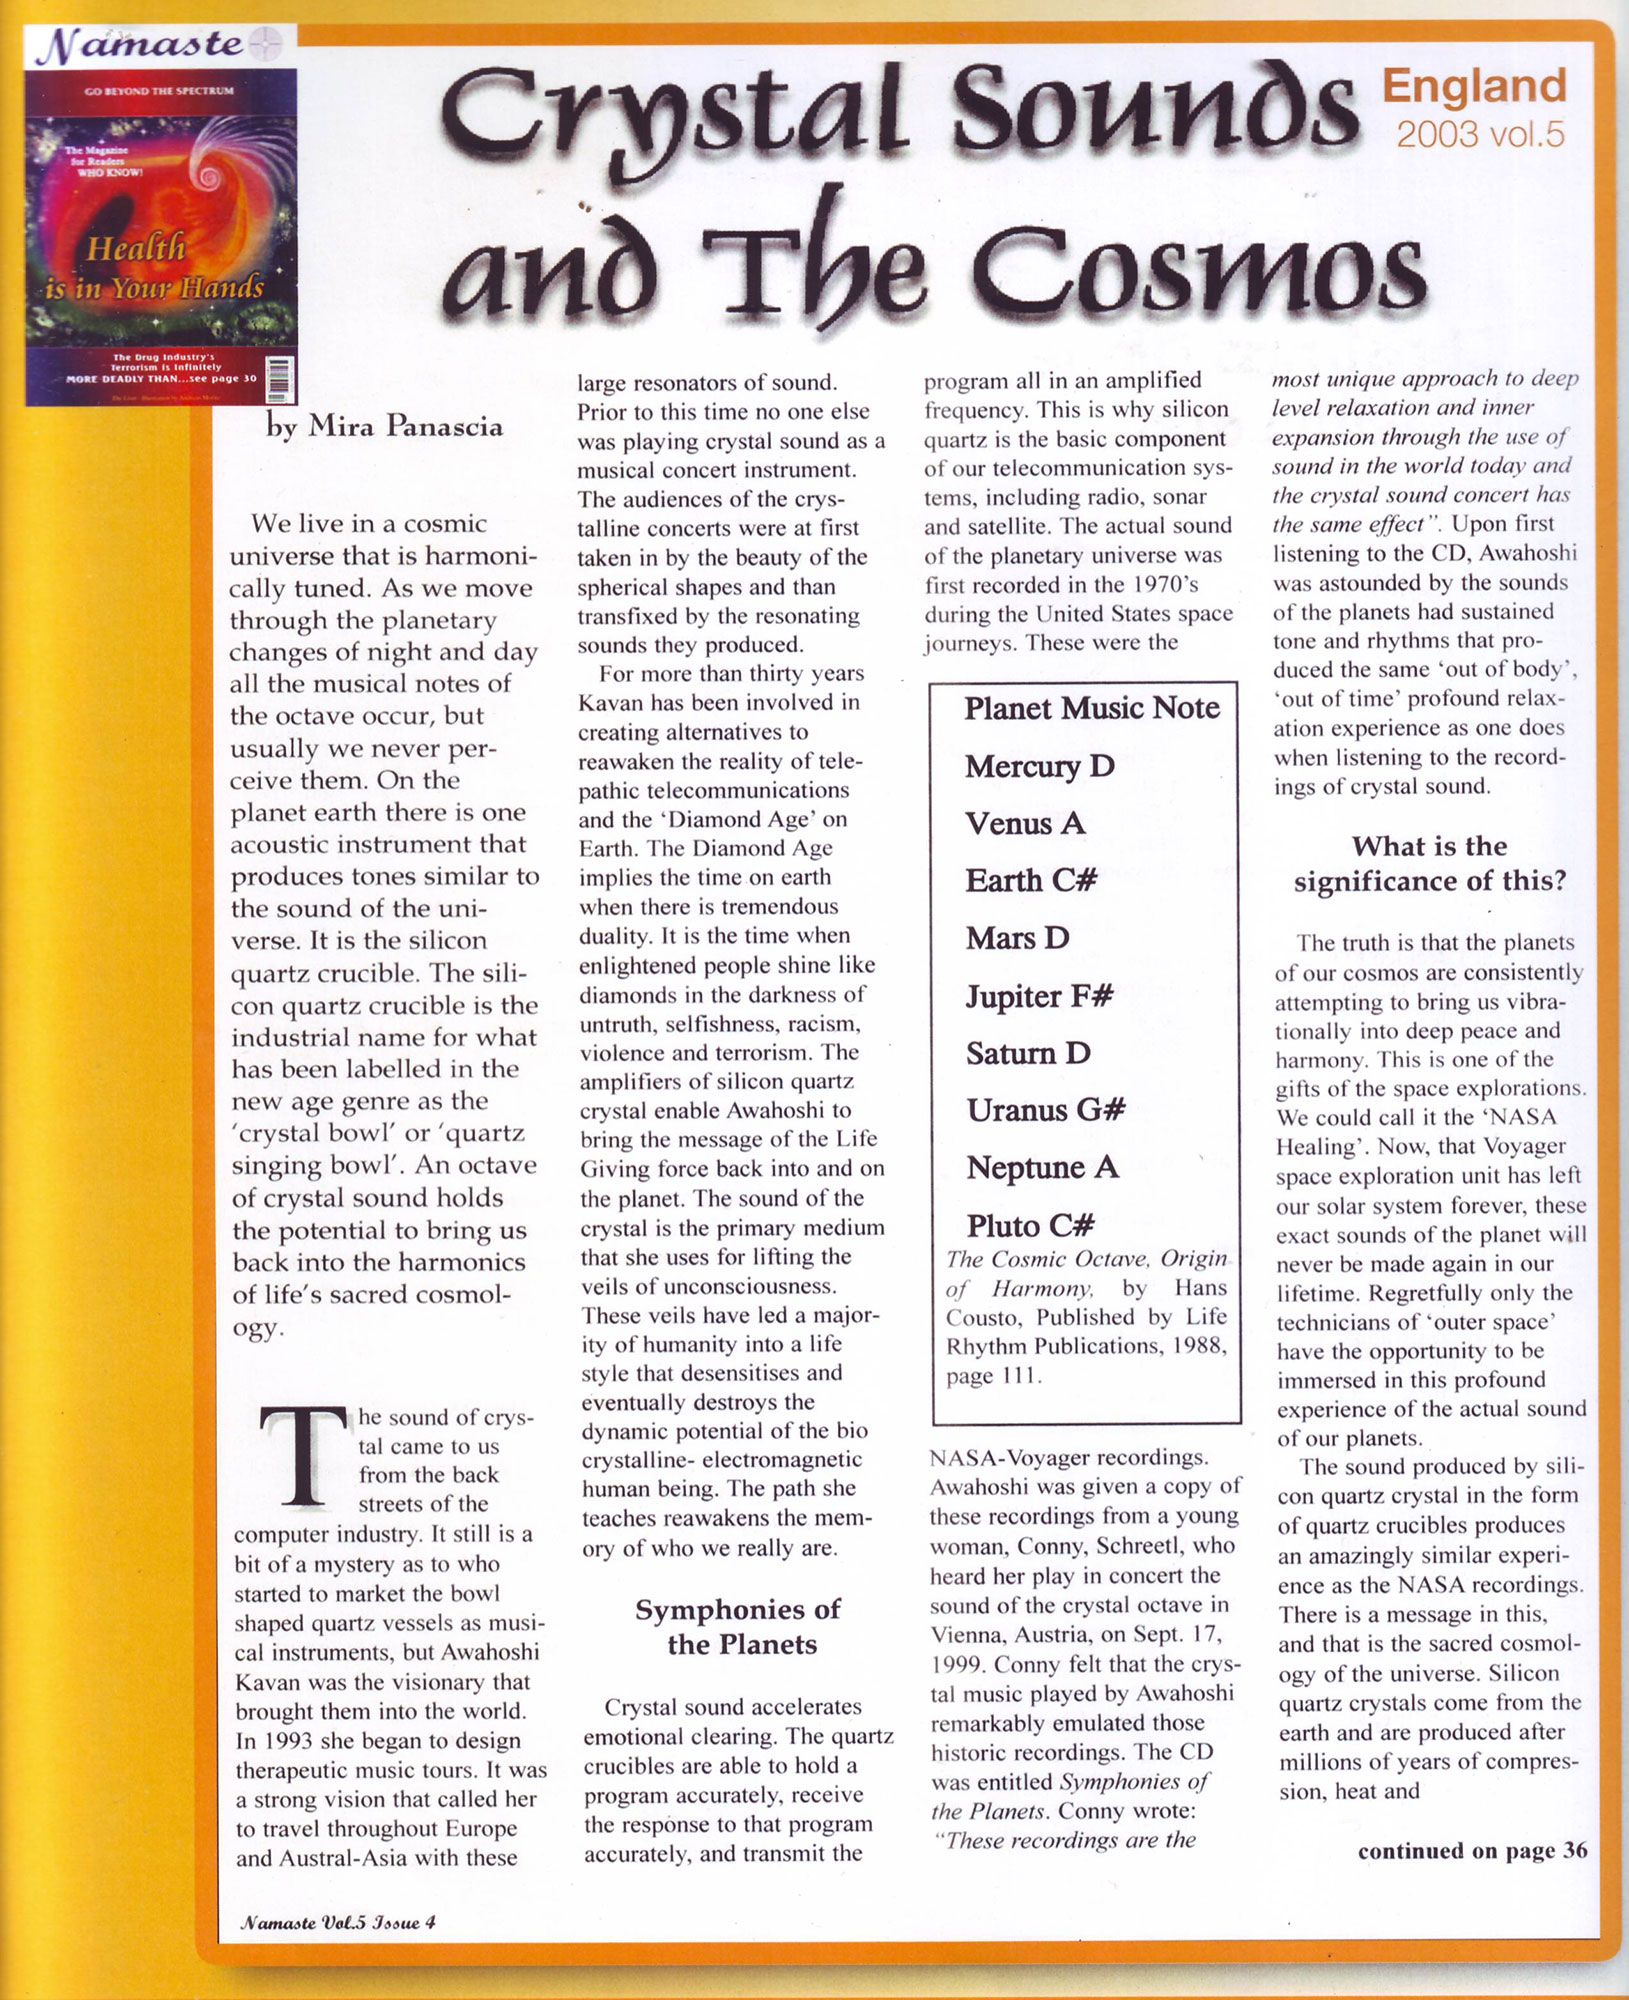 Crystal Sound and The Cosmos article - Crystal Sound Institute by AwaHoshi Kavan